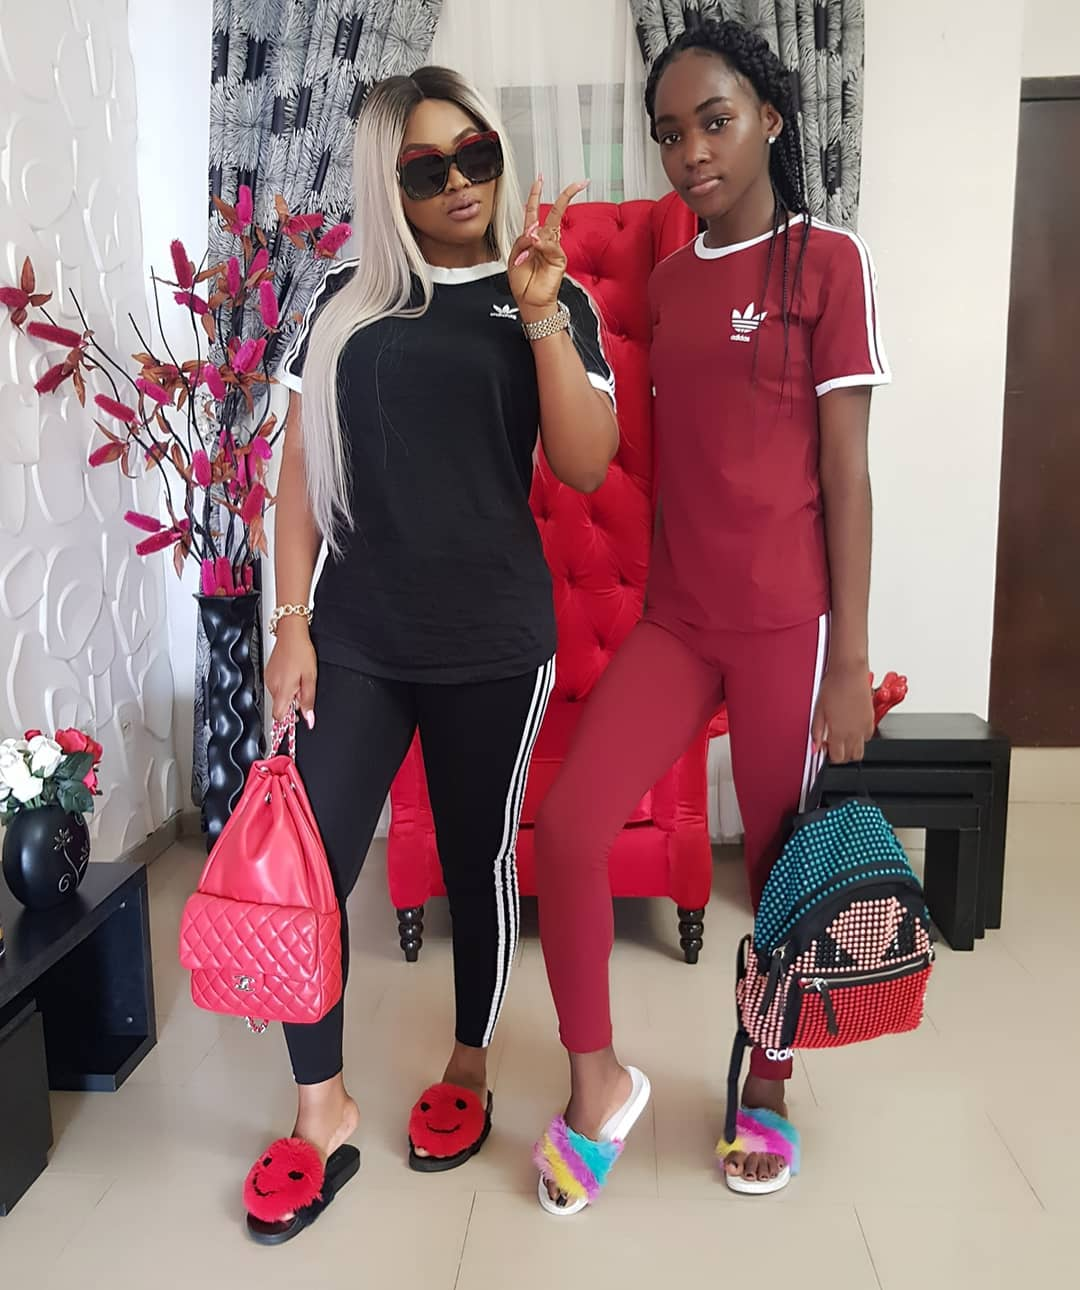 mercy-aigbe-calls-husband-sperm-donor-as-she-wishes-self-a-happy-fathers-day